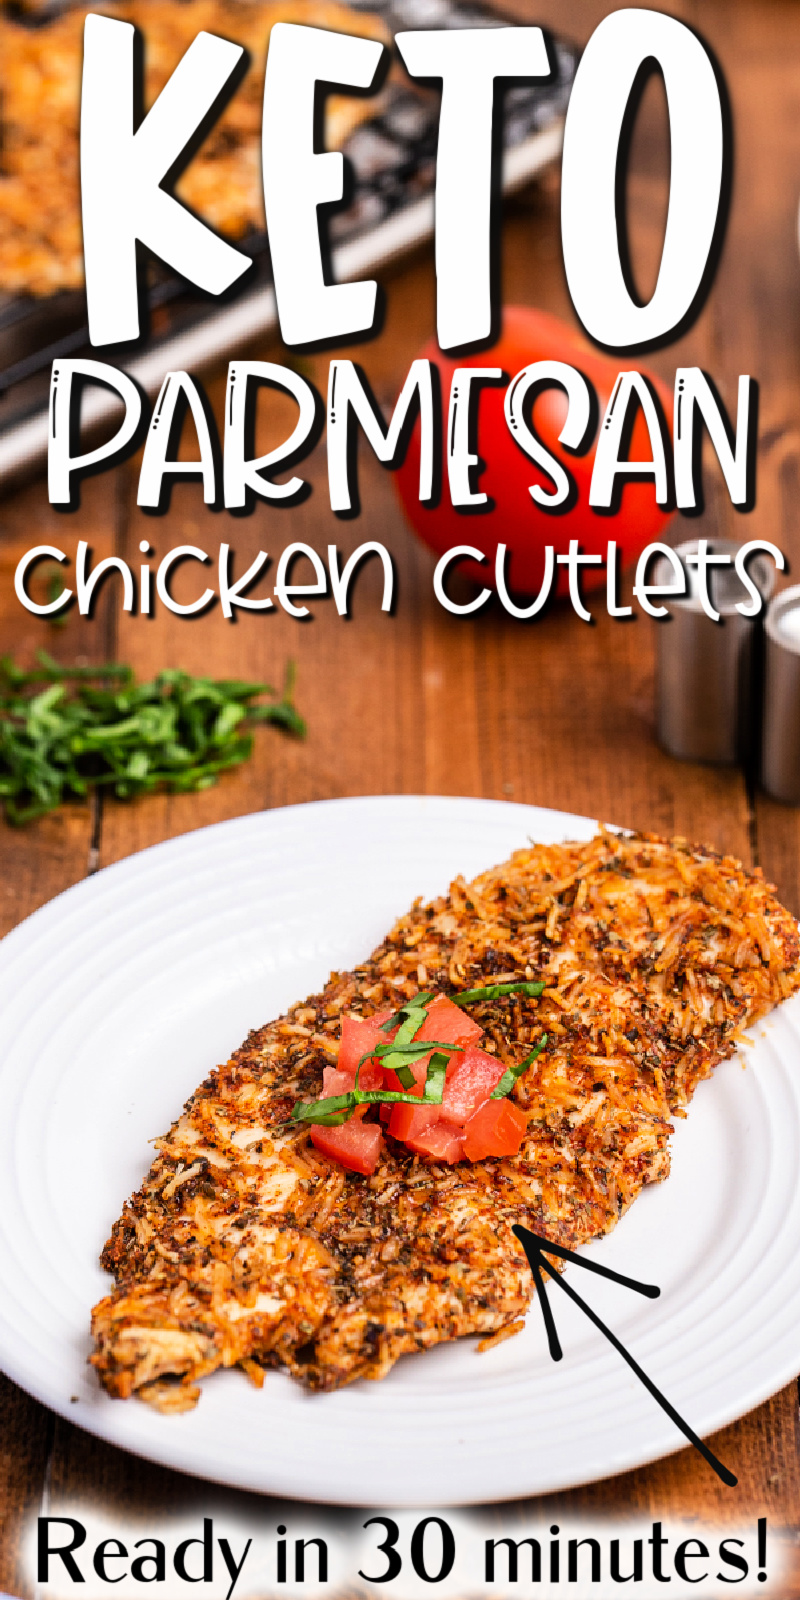 Keto Parmesan Crusted Chicken Cutlets - Chicken cutlets coated in seasoned Parmesan and baked in the oven. They are so tender and full of flavor the whole family will be requesting them over and over. #keto #lowcarb #glutenfree #chicken #parmesan #breast #cutlets #30minutes #easy #baked #recipe